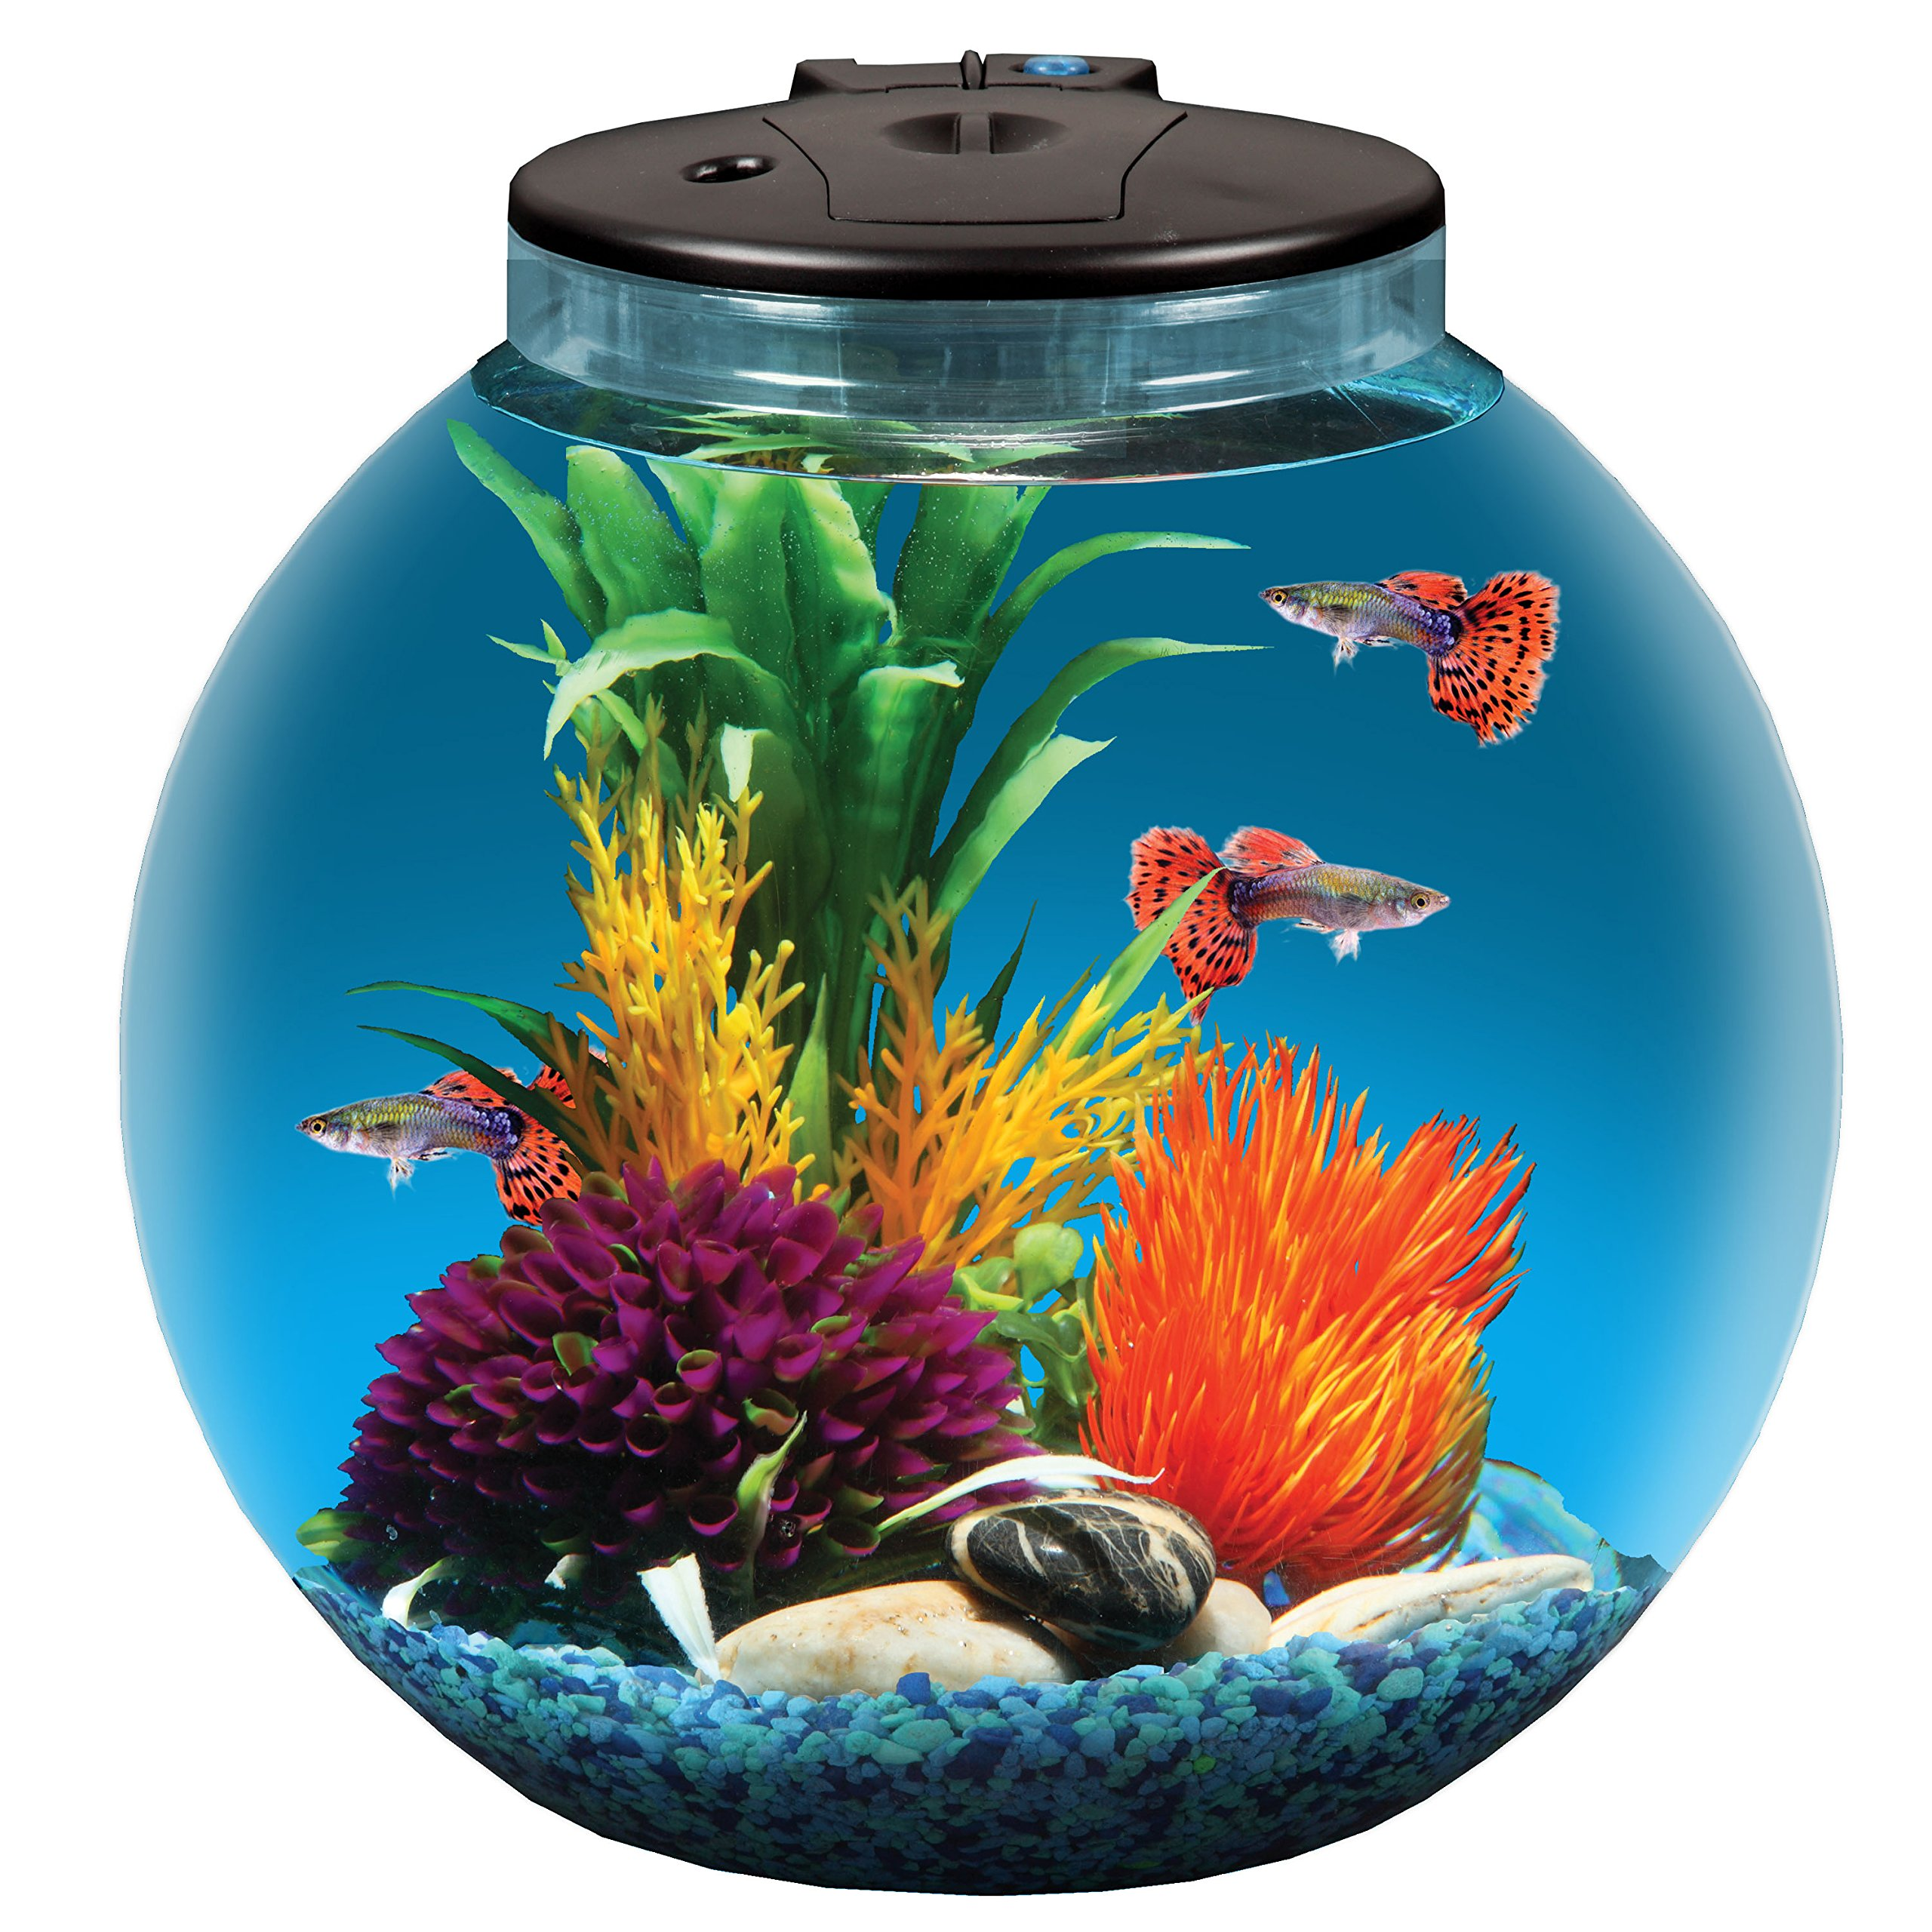 Koller Products AquaView 3-Gallon Aquarium with Power Filter and LED Lighting - AP30000GF-FFP by Koller Products